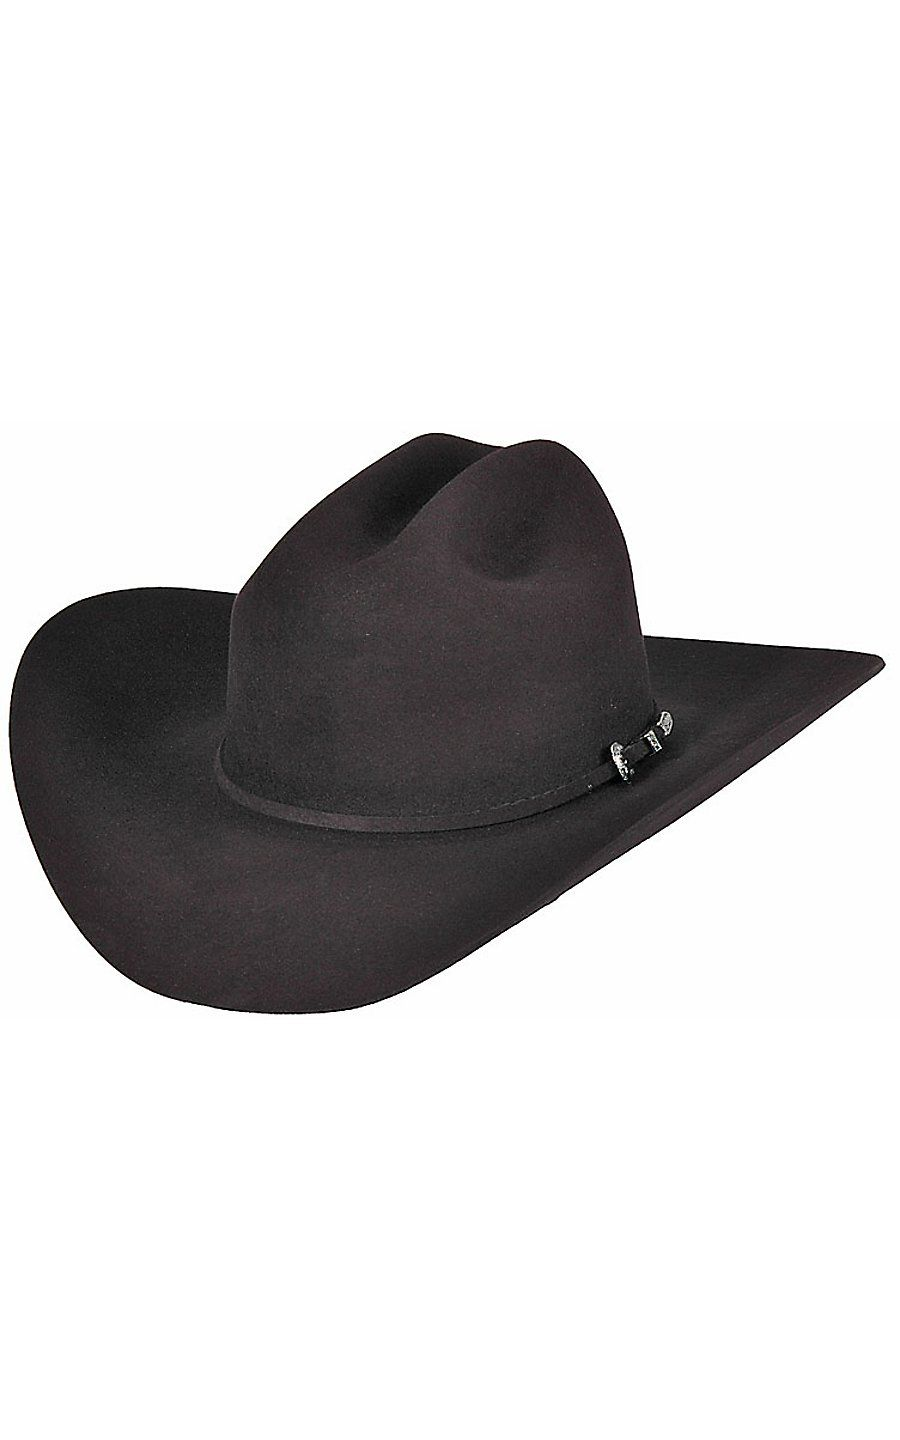 0b07840f2810eb Rodeo King 7X Low Rider Black Felt Cowboy Hat | Cowboy Hats & Caps ...